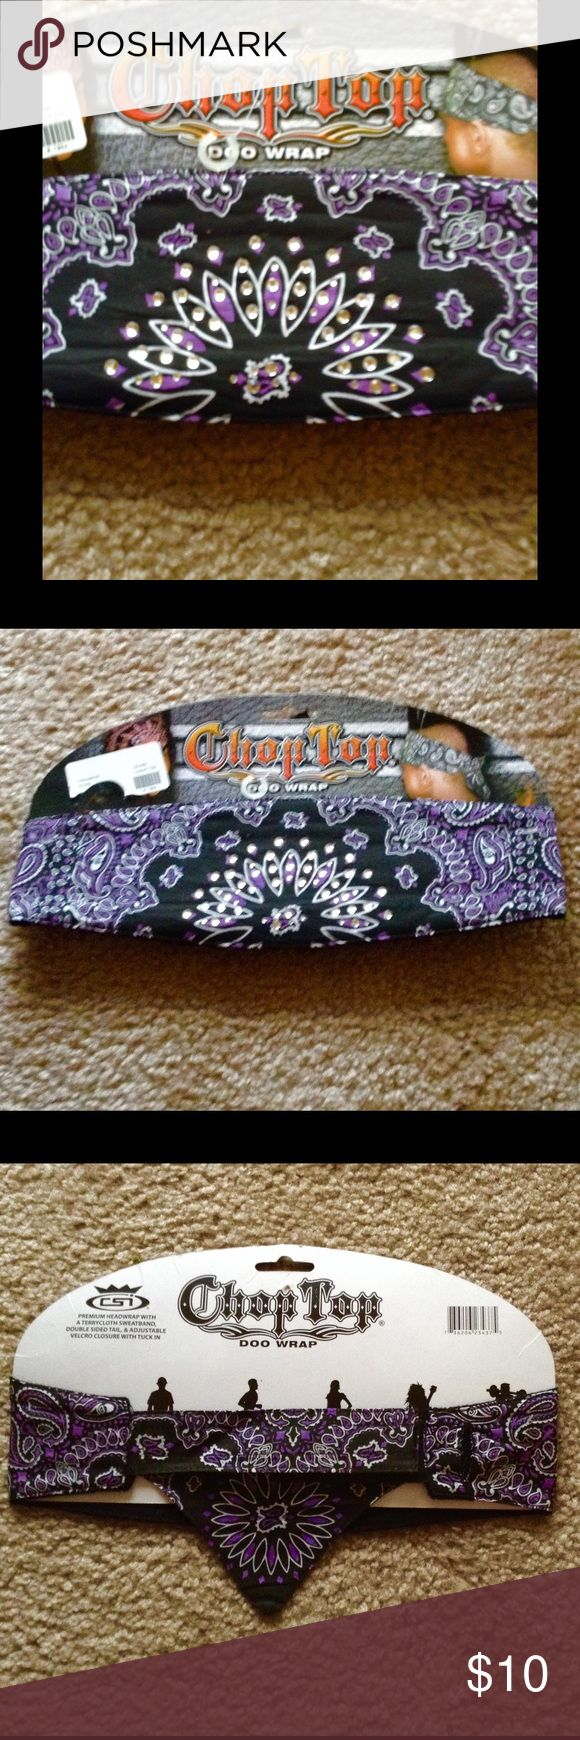 "Doo Wrap with Bling💫💫💫NWT💨🙆💫💫 Unisex "" Doo wrap"" with a terrycloth sweatband, double sided tail, & adjustable Velcro closure that tucks in. Purple & black with rhinestone decor on front middle.🌄💜💜🚴🏁🚦🚥 Chop Top Accessories Hair Accessories"